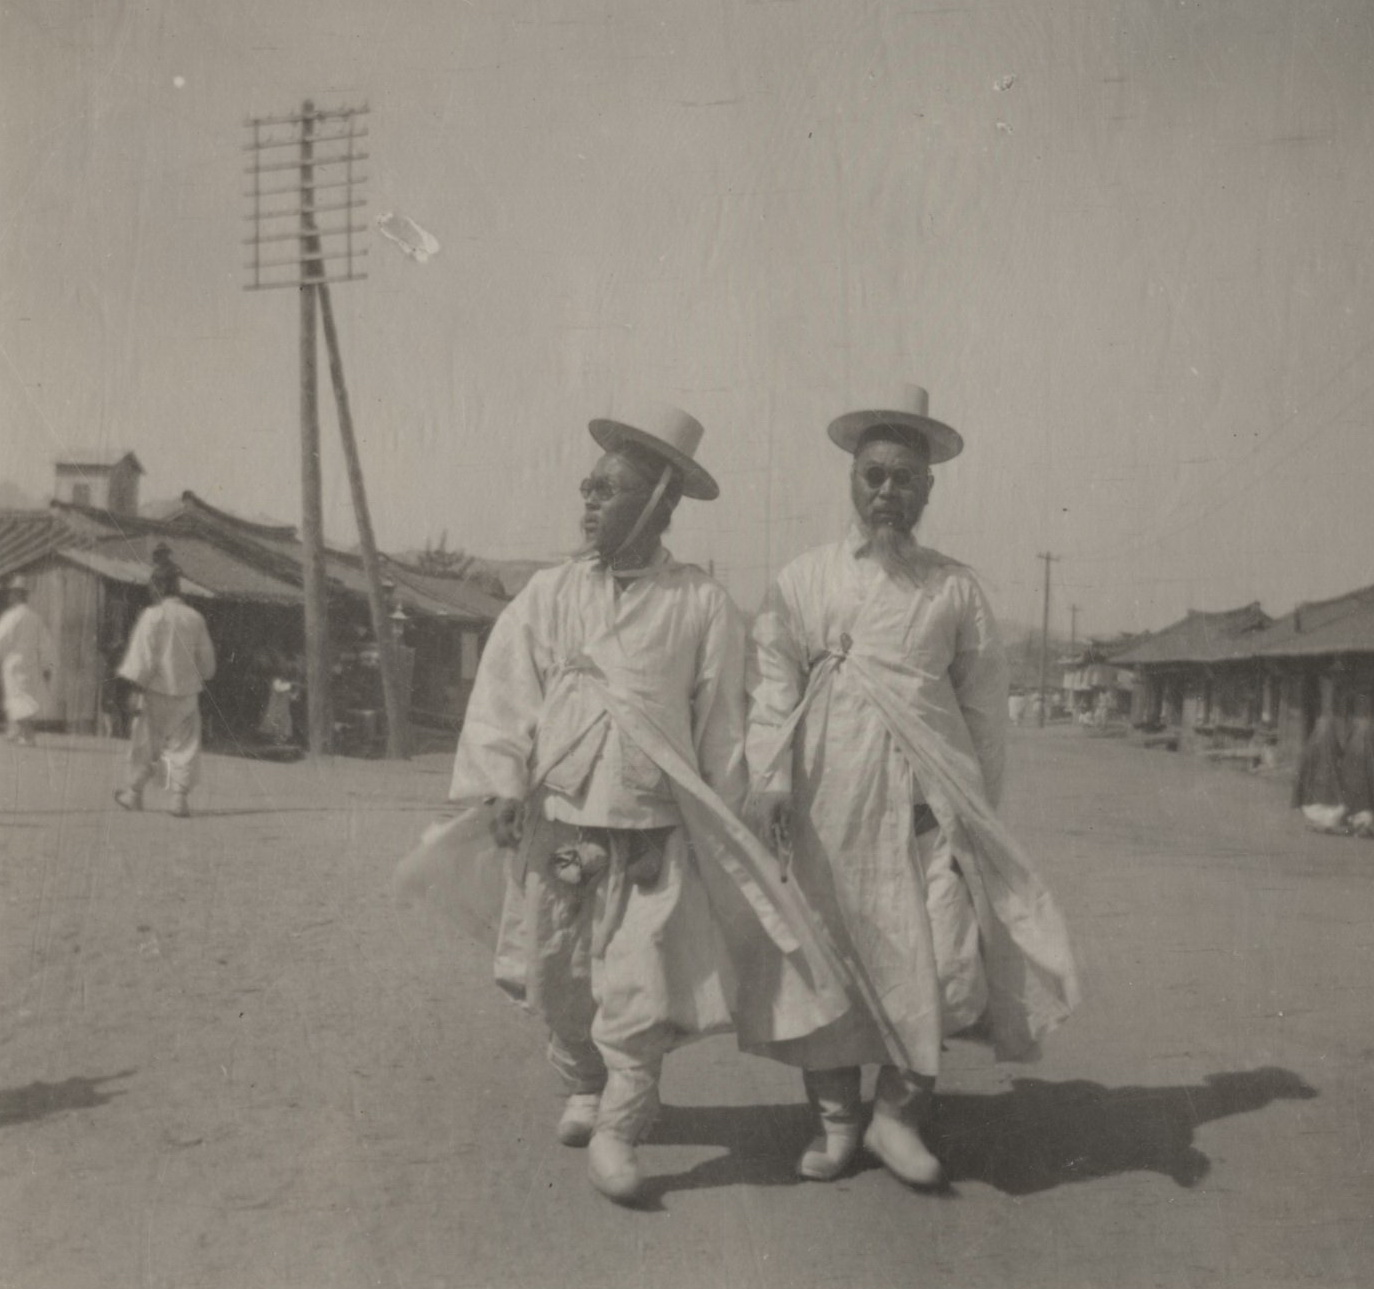 Old Photographs of Life in Korea (26)